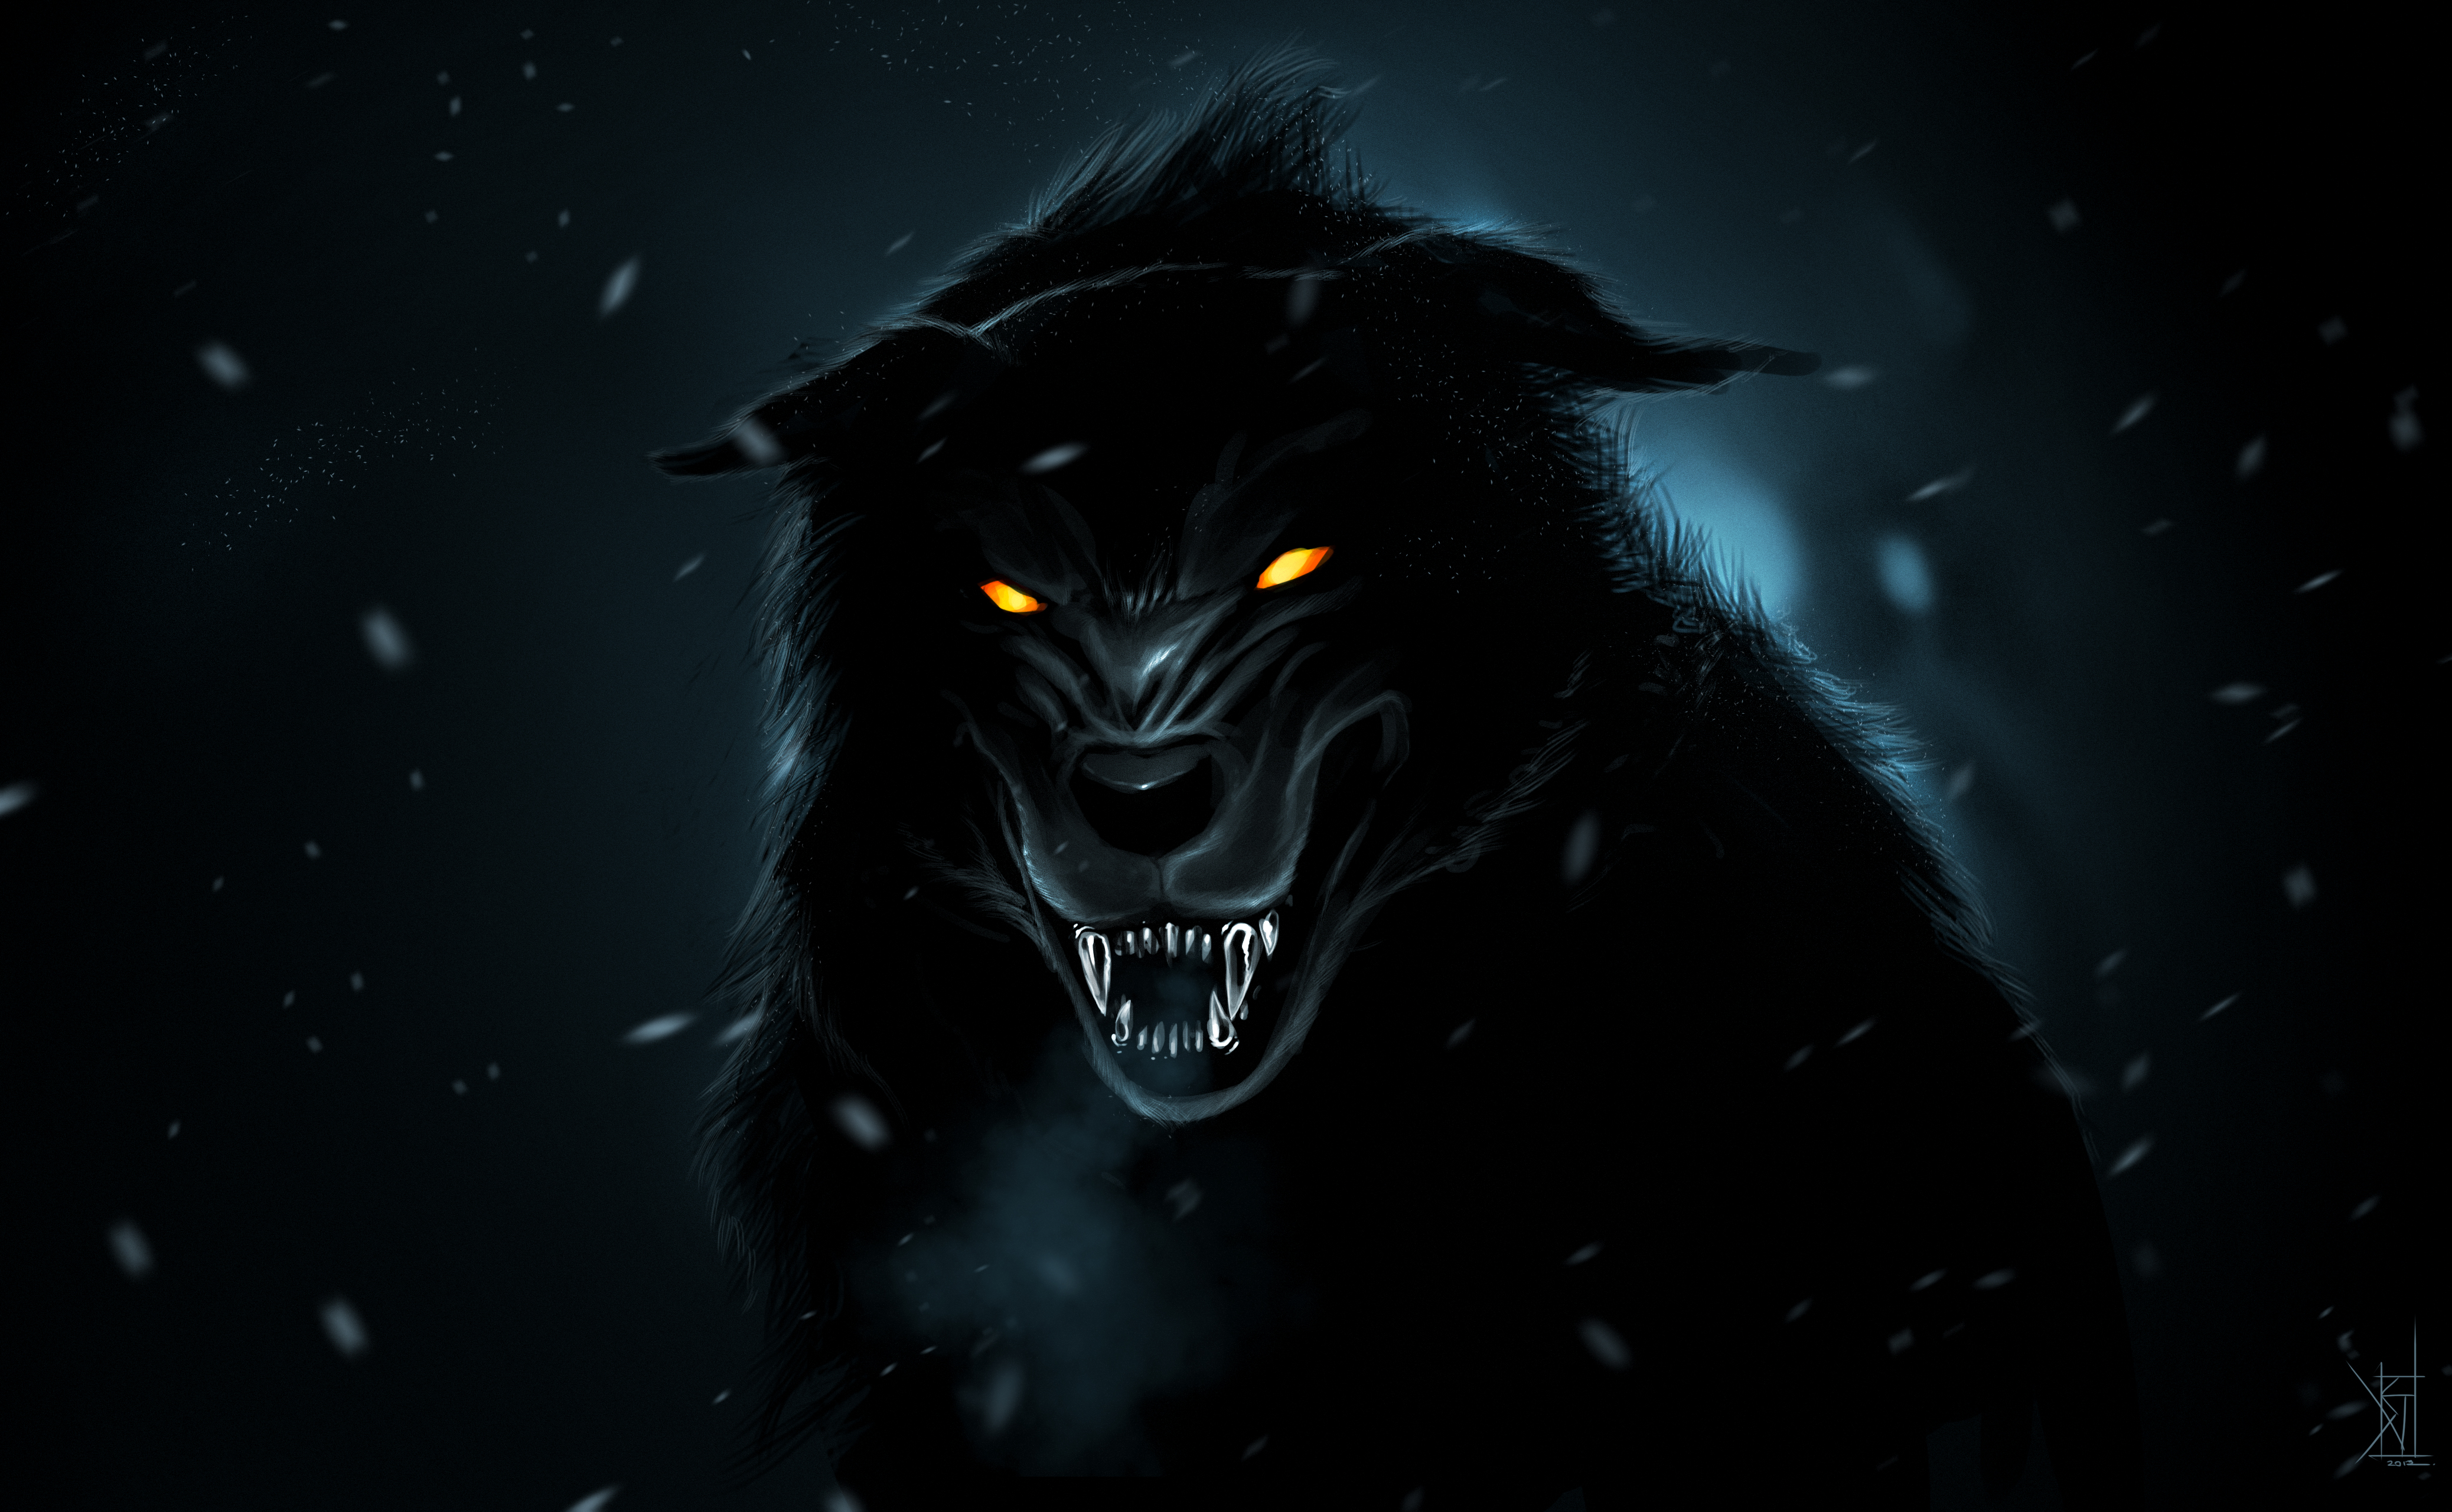 black_wolf_by_therisingsoul-d6aqjaw.jpg